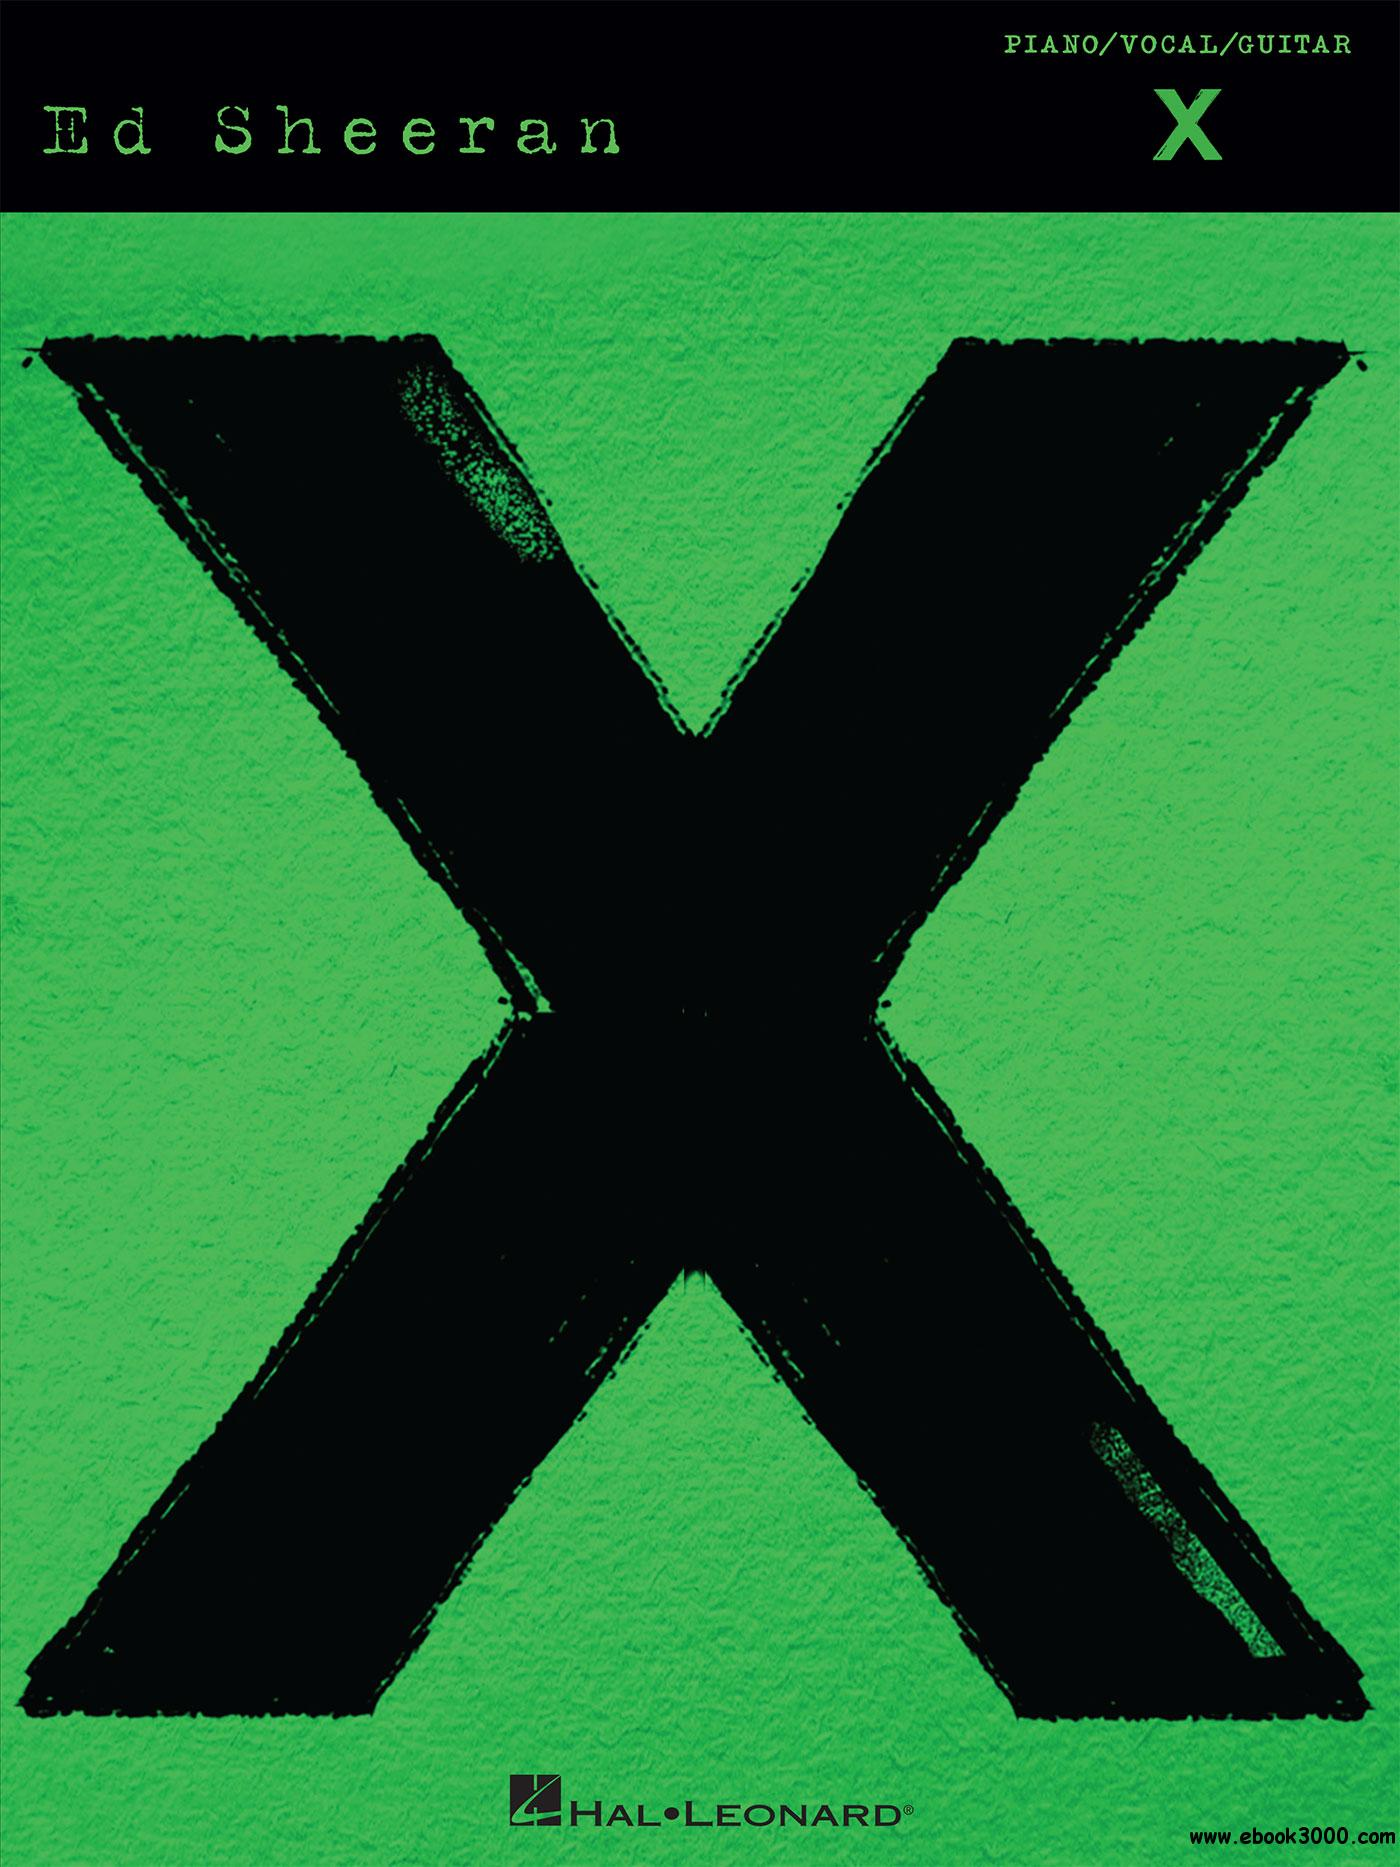 Ed Sheeran--X Songbook